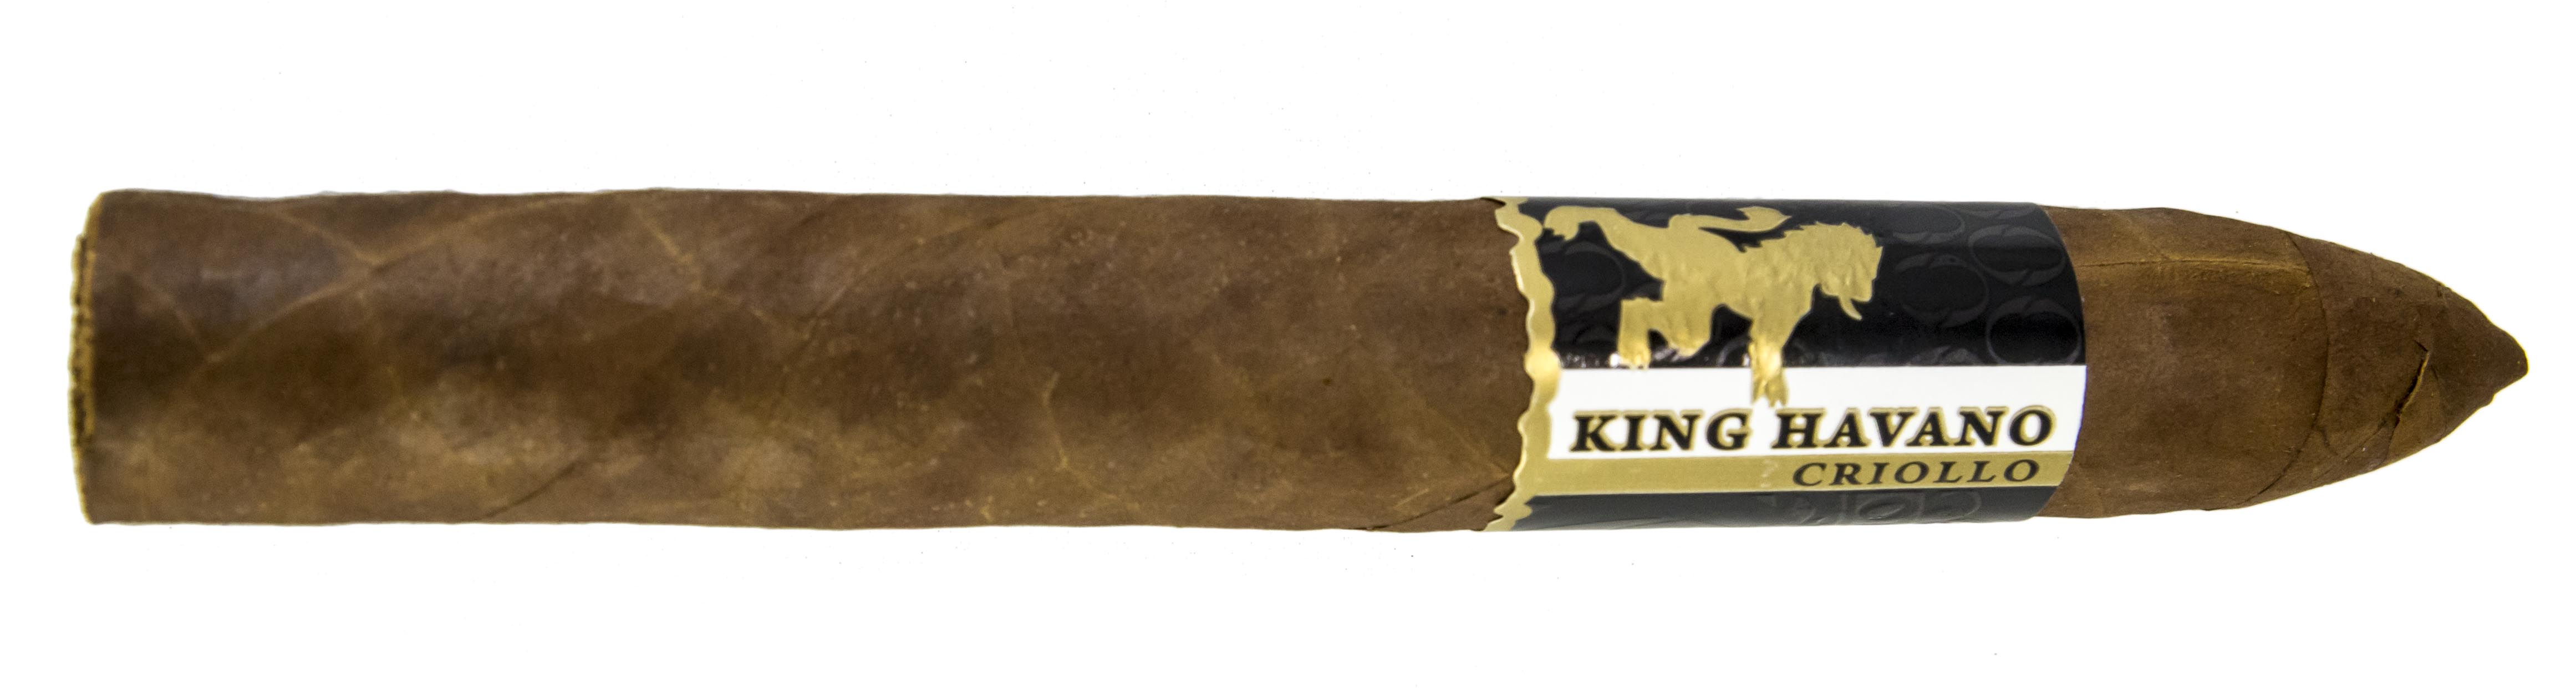 Blind Cigar Review: King Havano Criollo | Torpedo